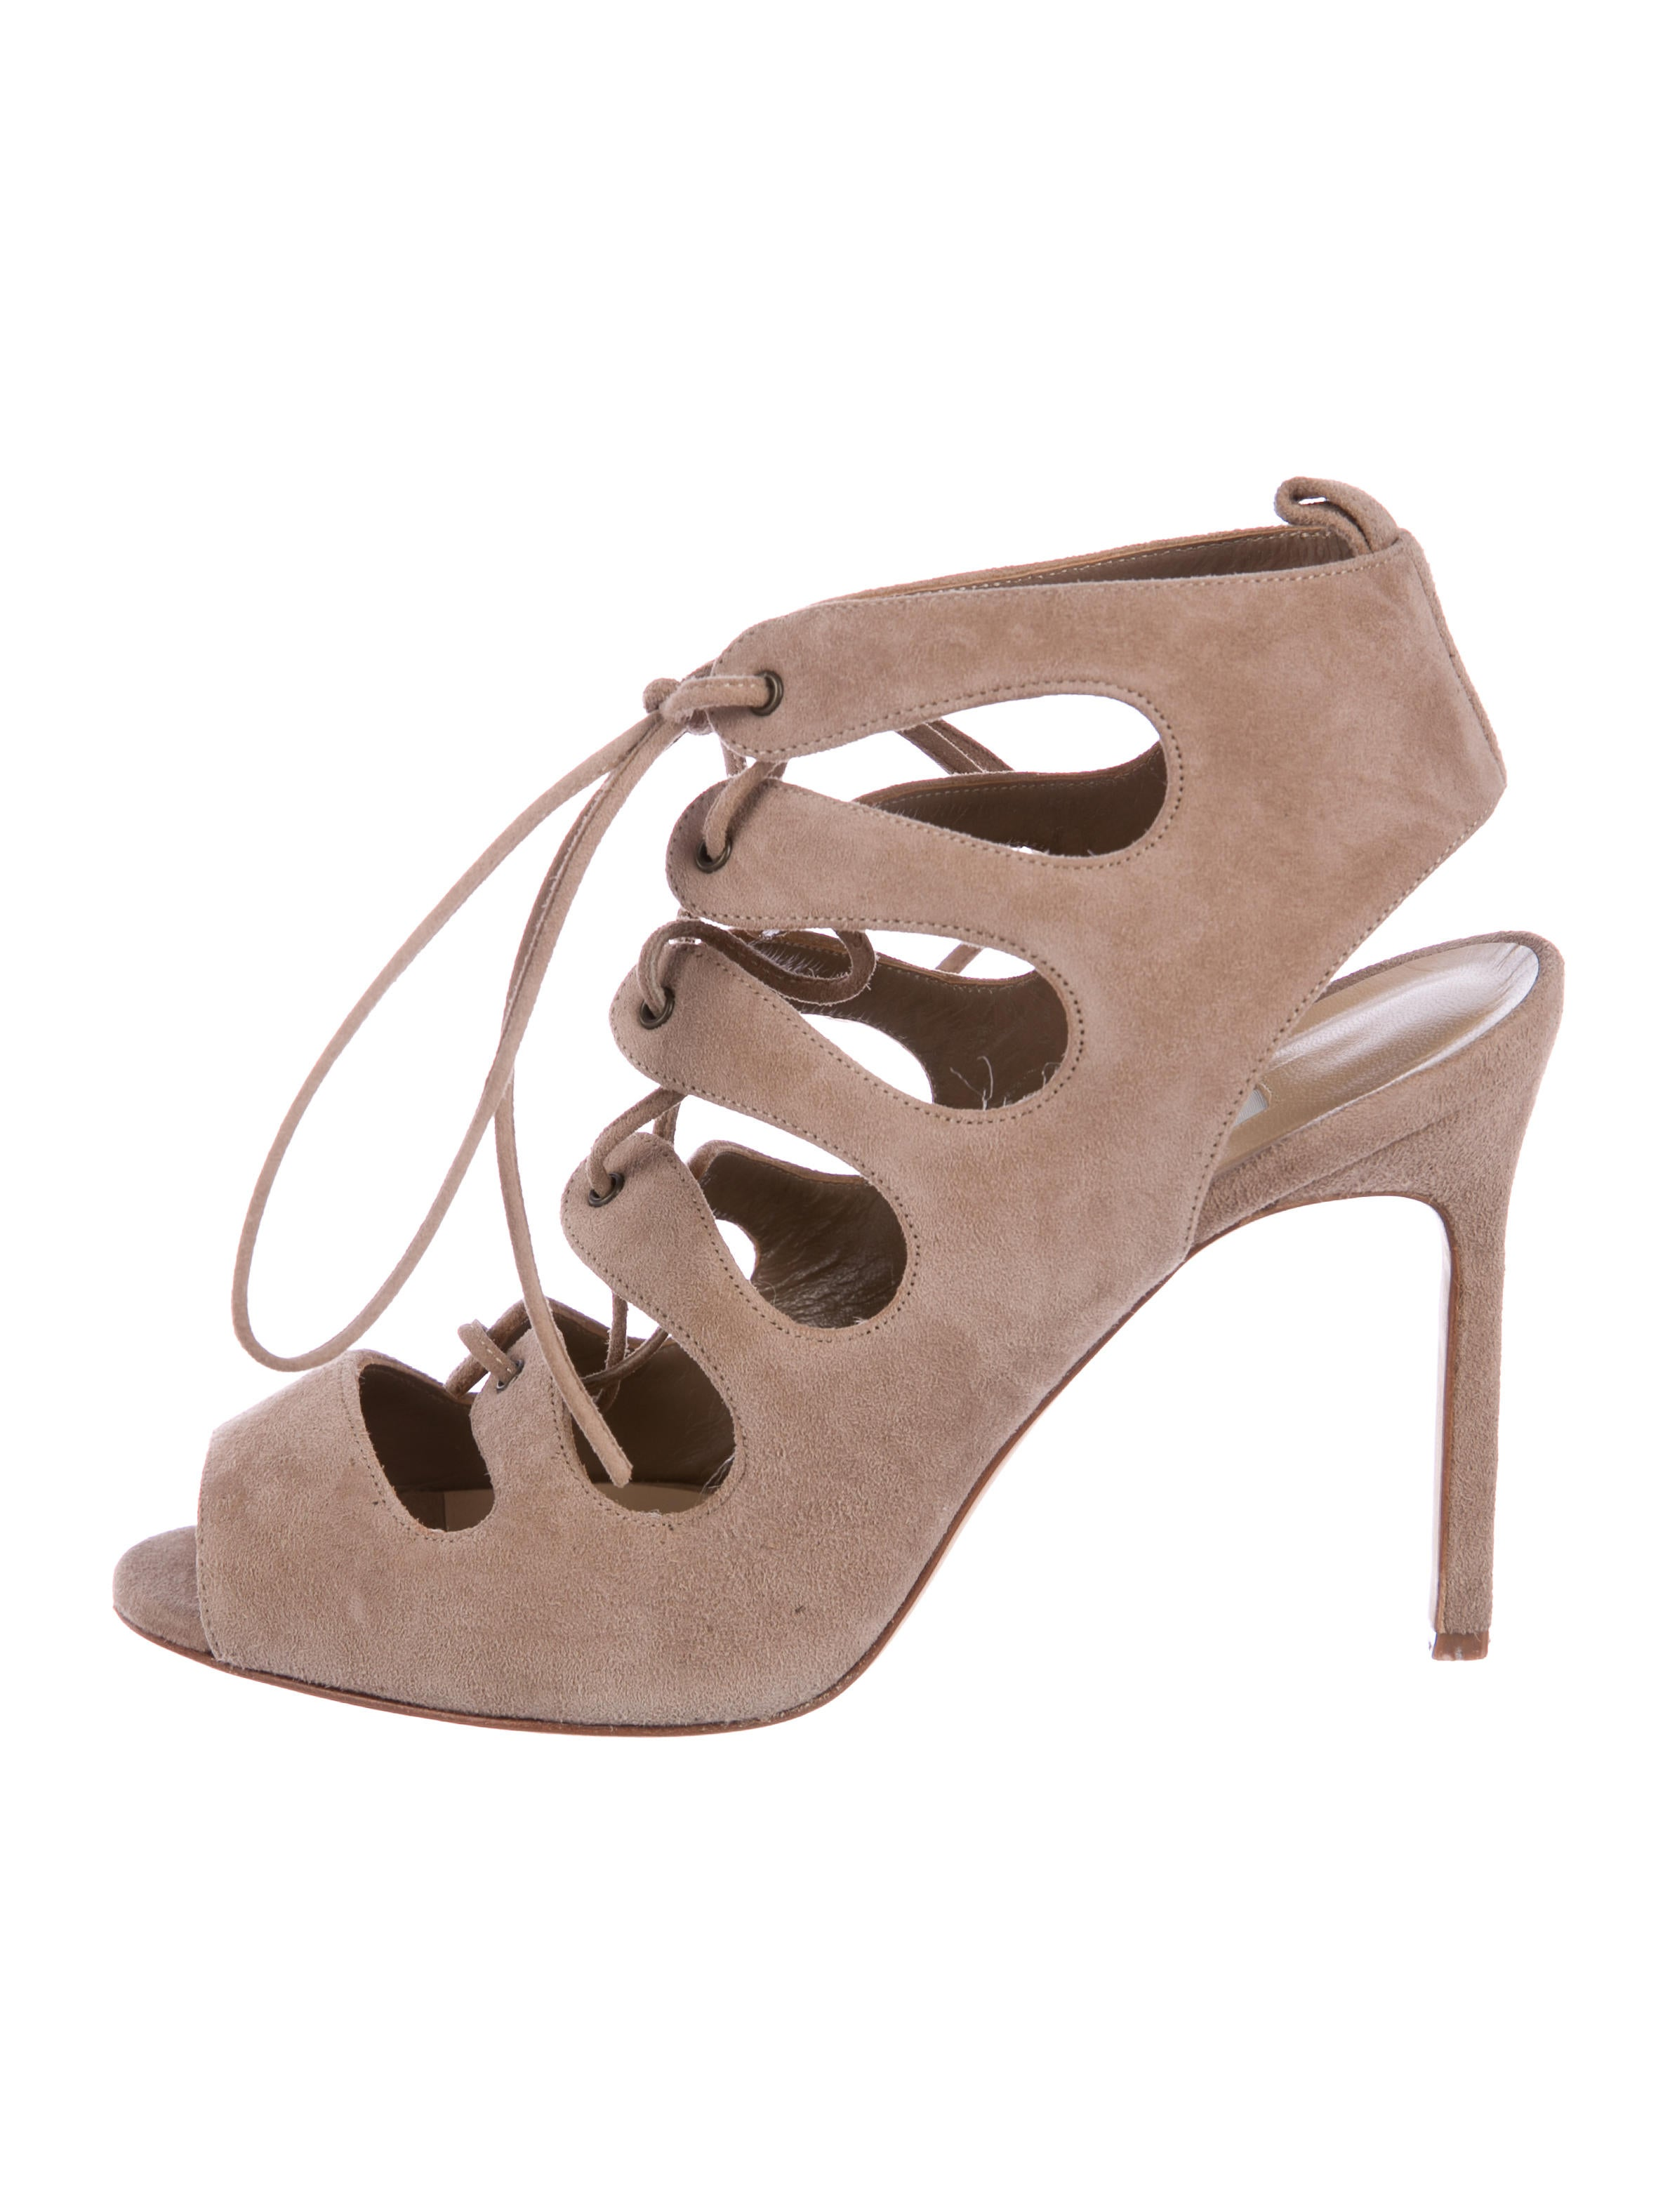 low price fee shipping for sale largest supplier cheap price Manolo Blahnik Taala Suede Sandals L0xoZuuO7J